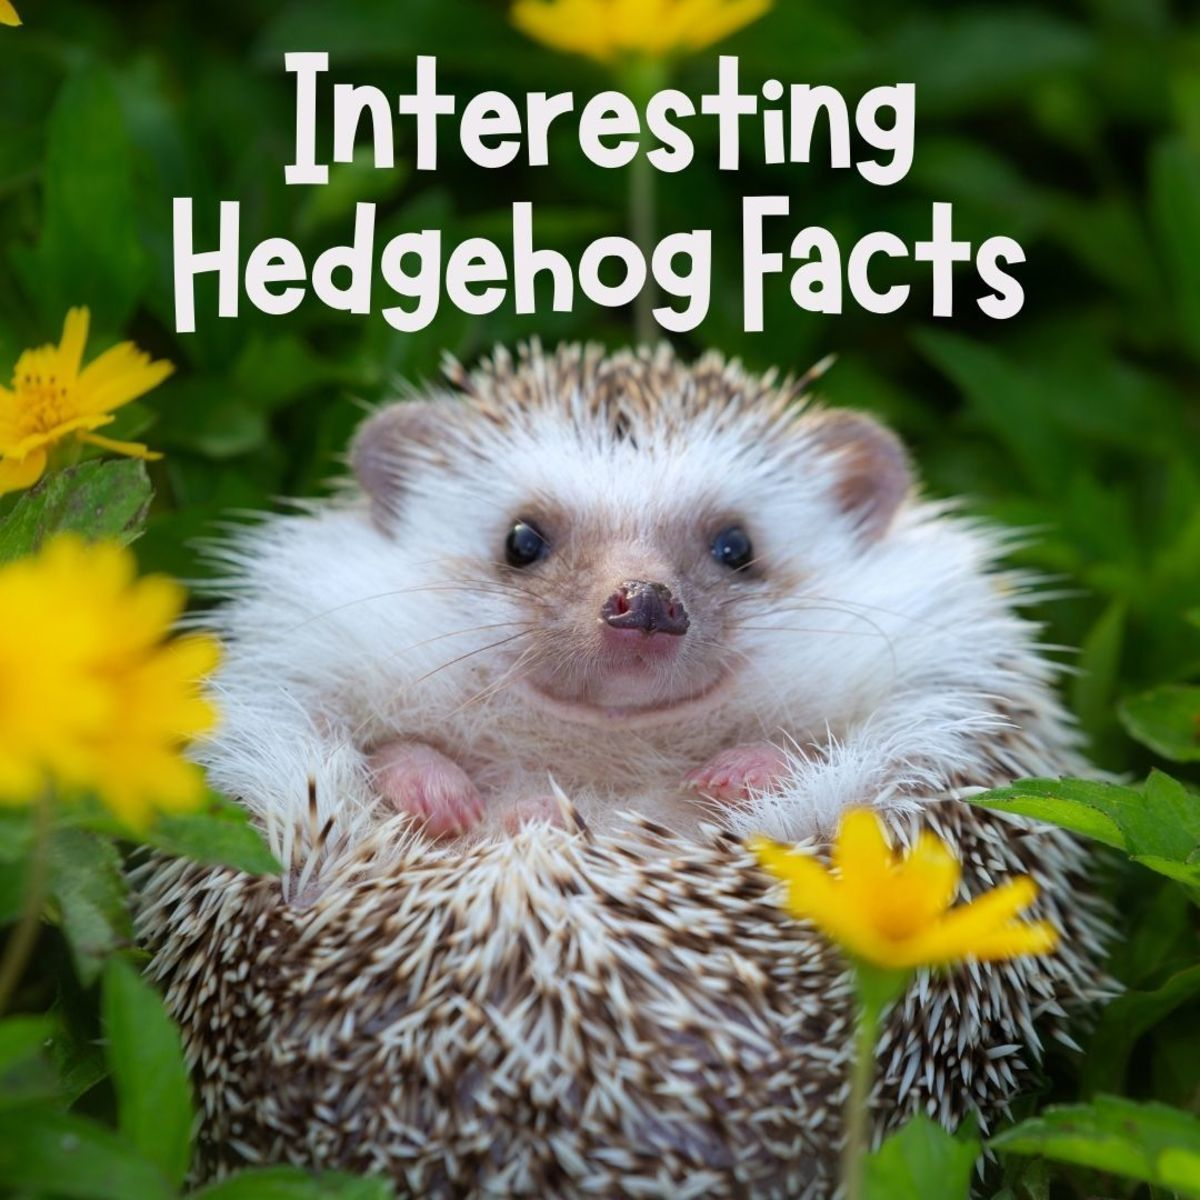 Do hedgehogs have eyelids? Learn all about hedgehogs here.